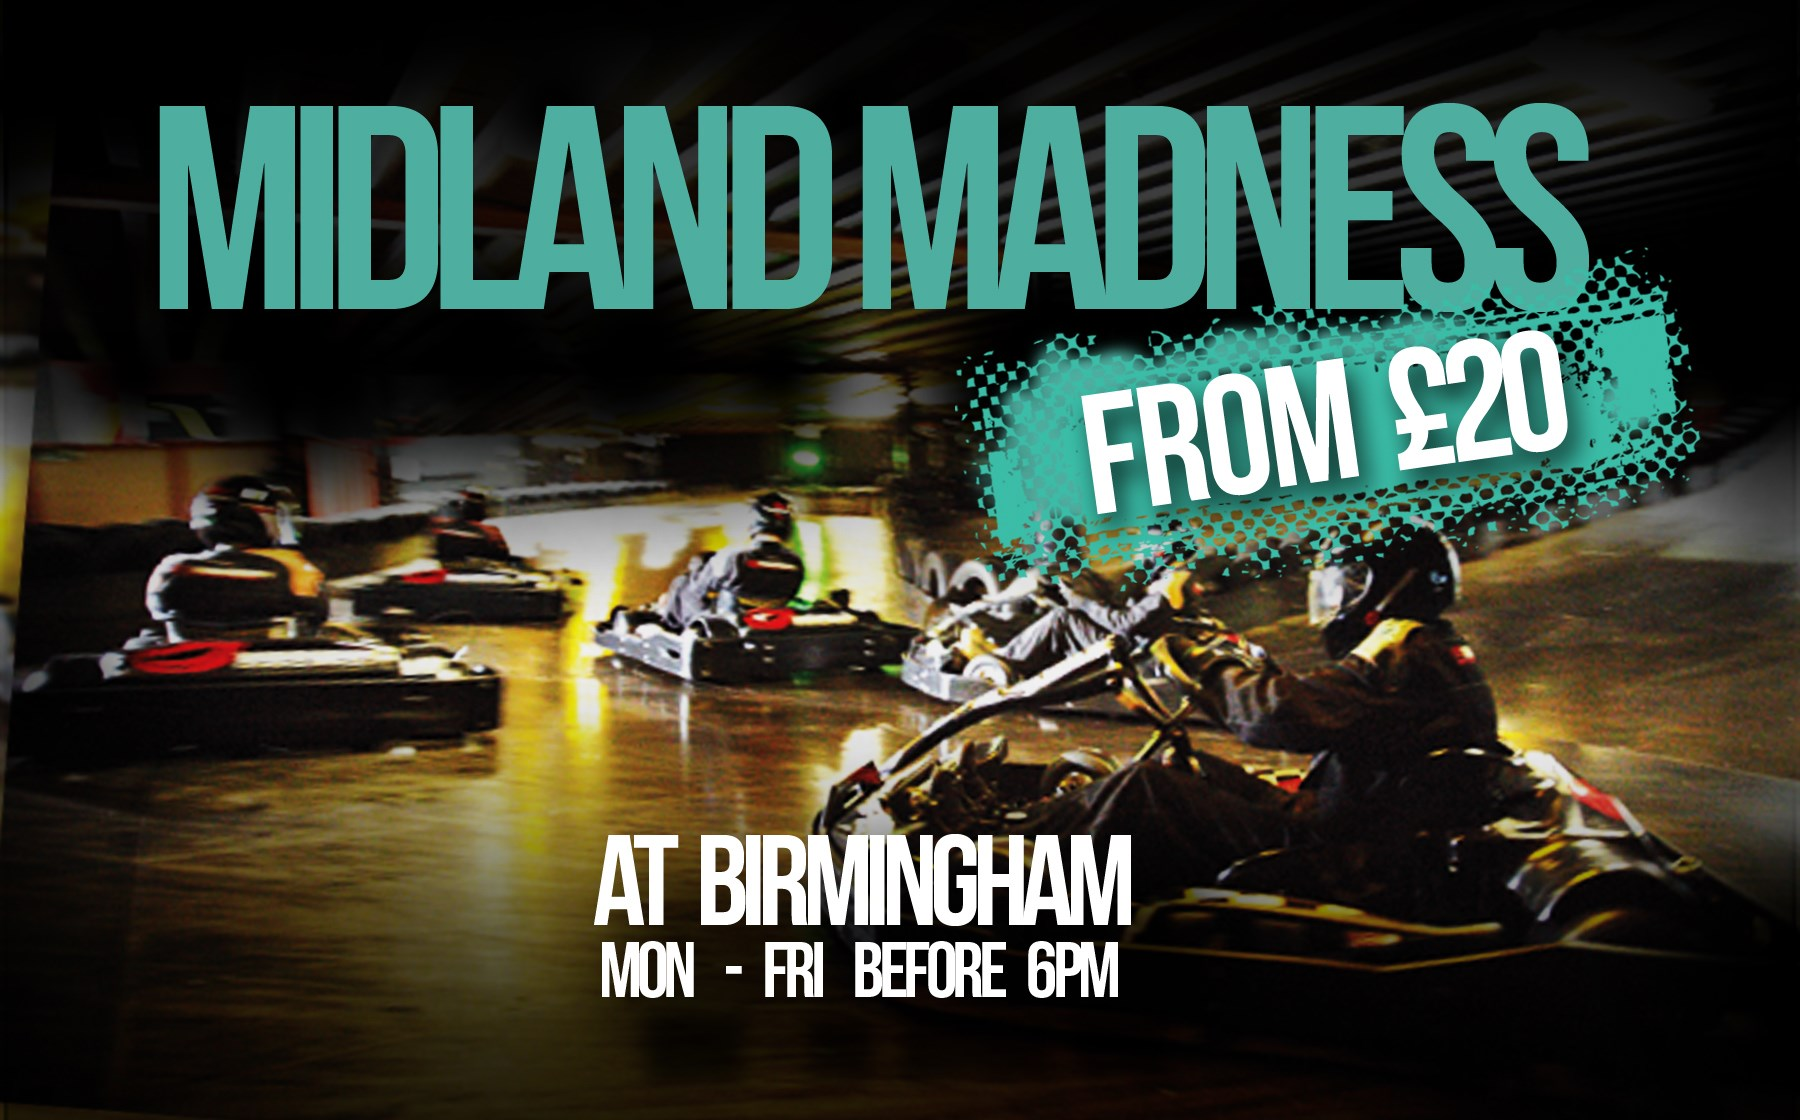 GO KARTING OFFERS - £20 Midland Madness